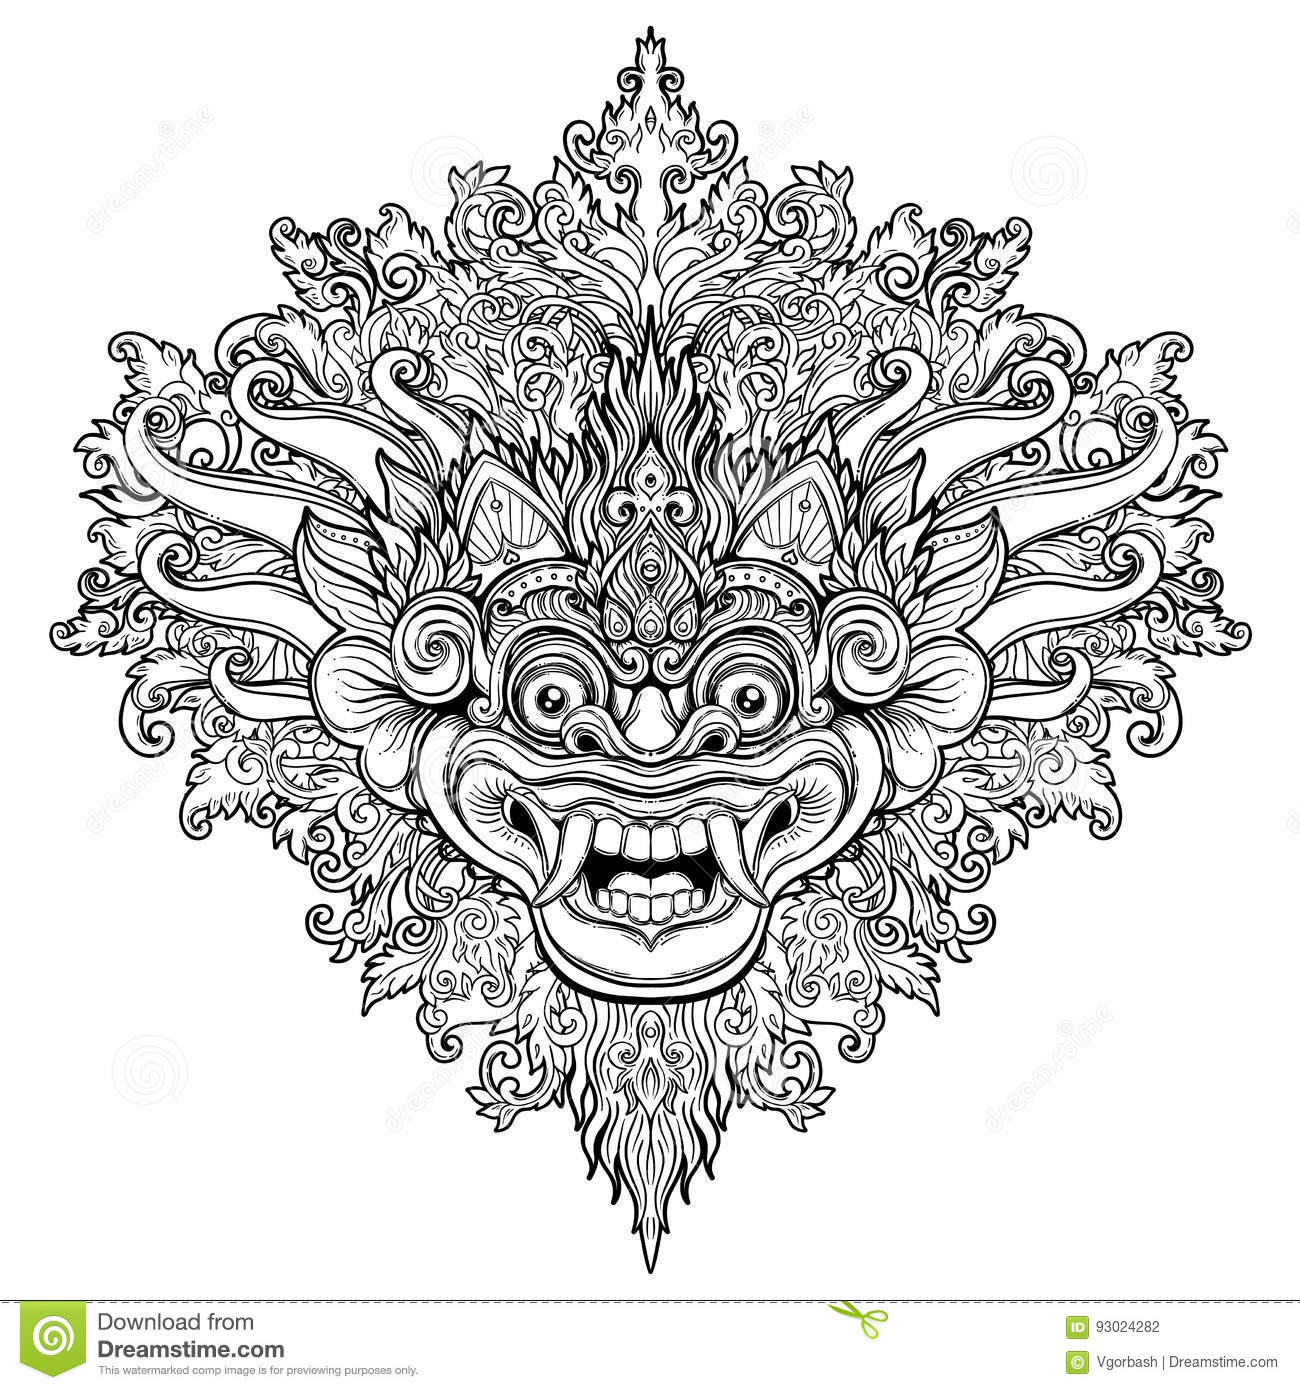 Barong. Traditional ritual Balinese mask. Vector decorative ornate outline illustration isolated. Hindu ethnic symbol, tattoo art